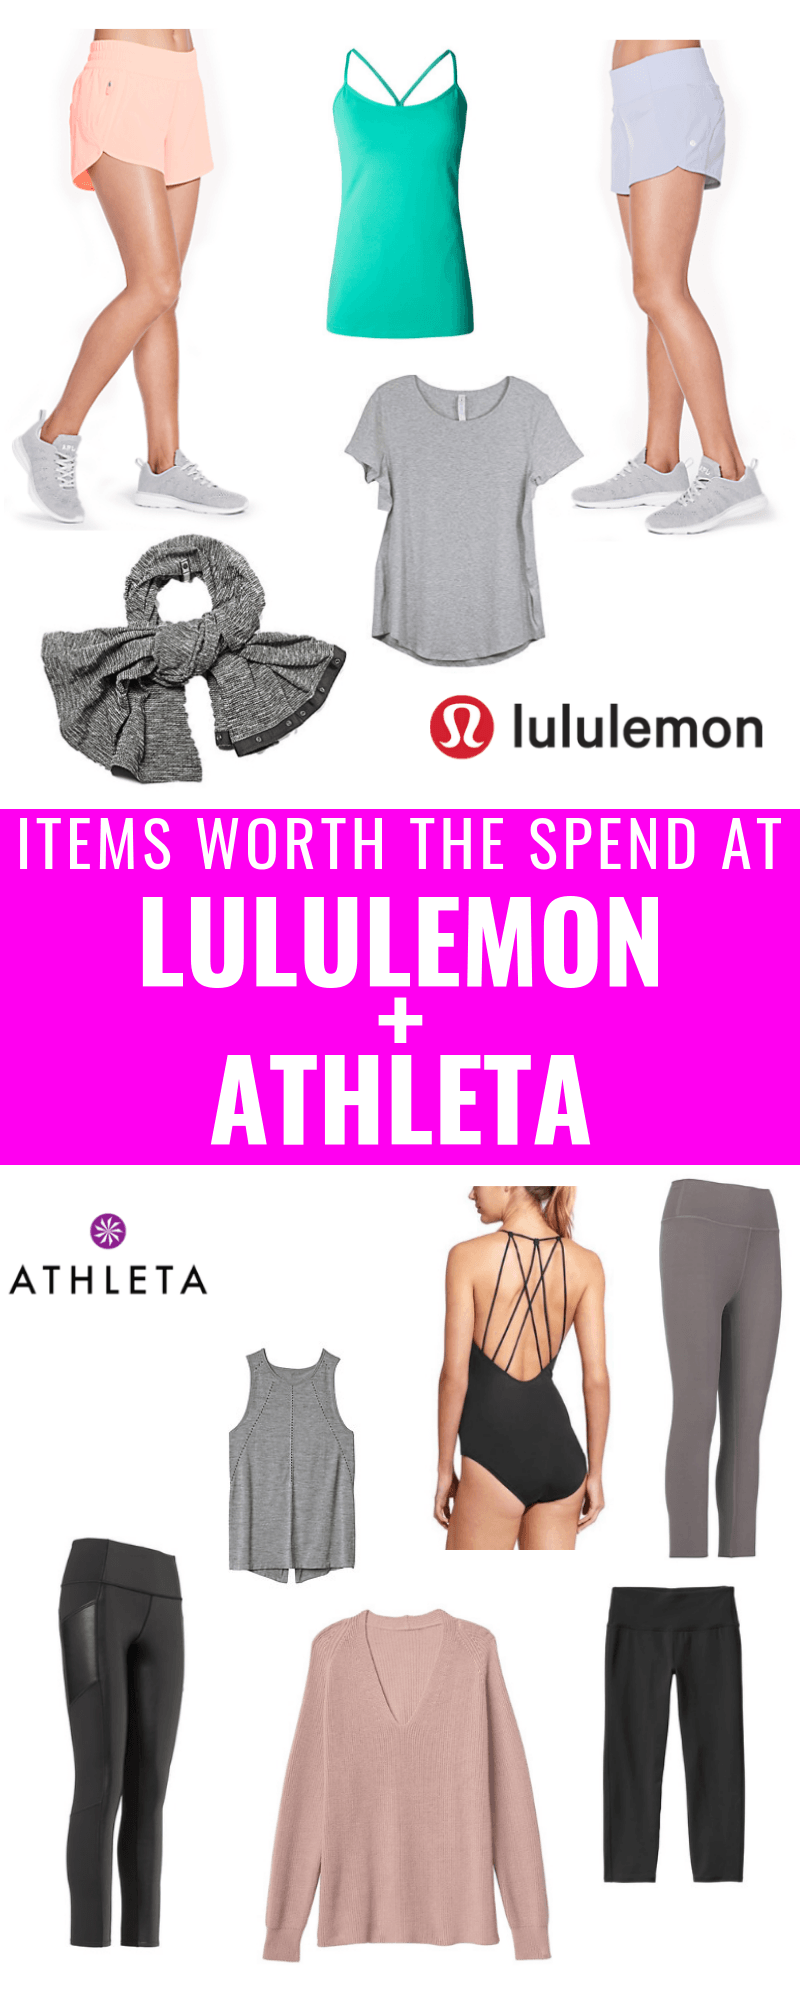 9b71d88a02 Items Worth The Spend At Lululemon + Athleta